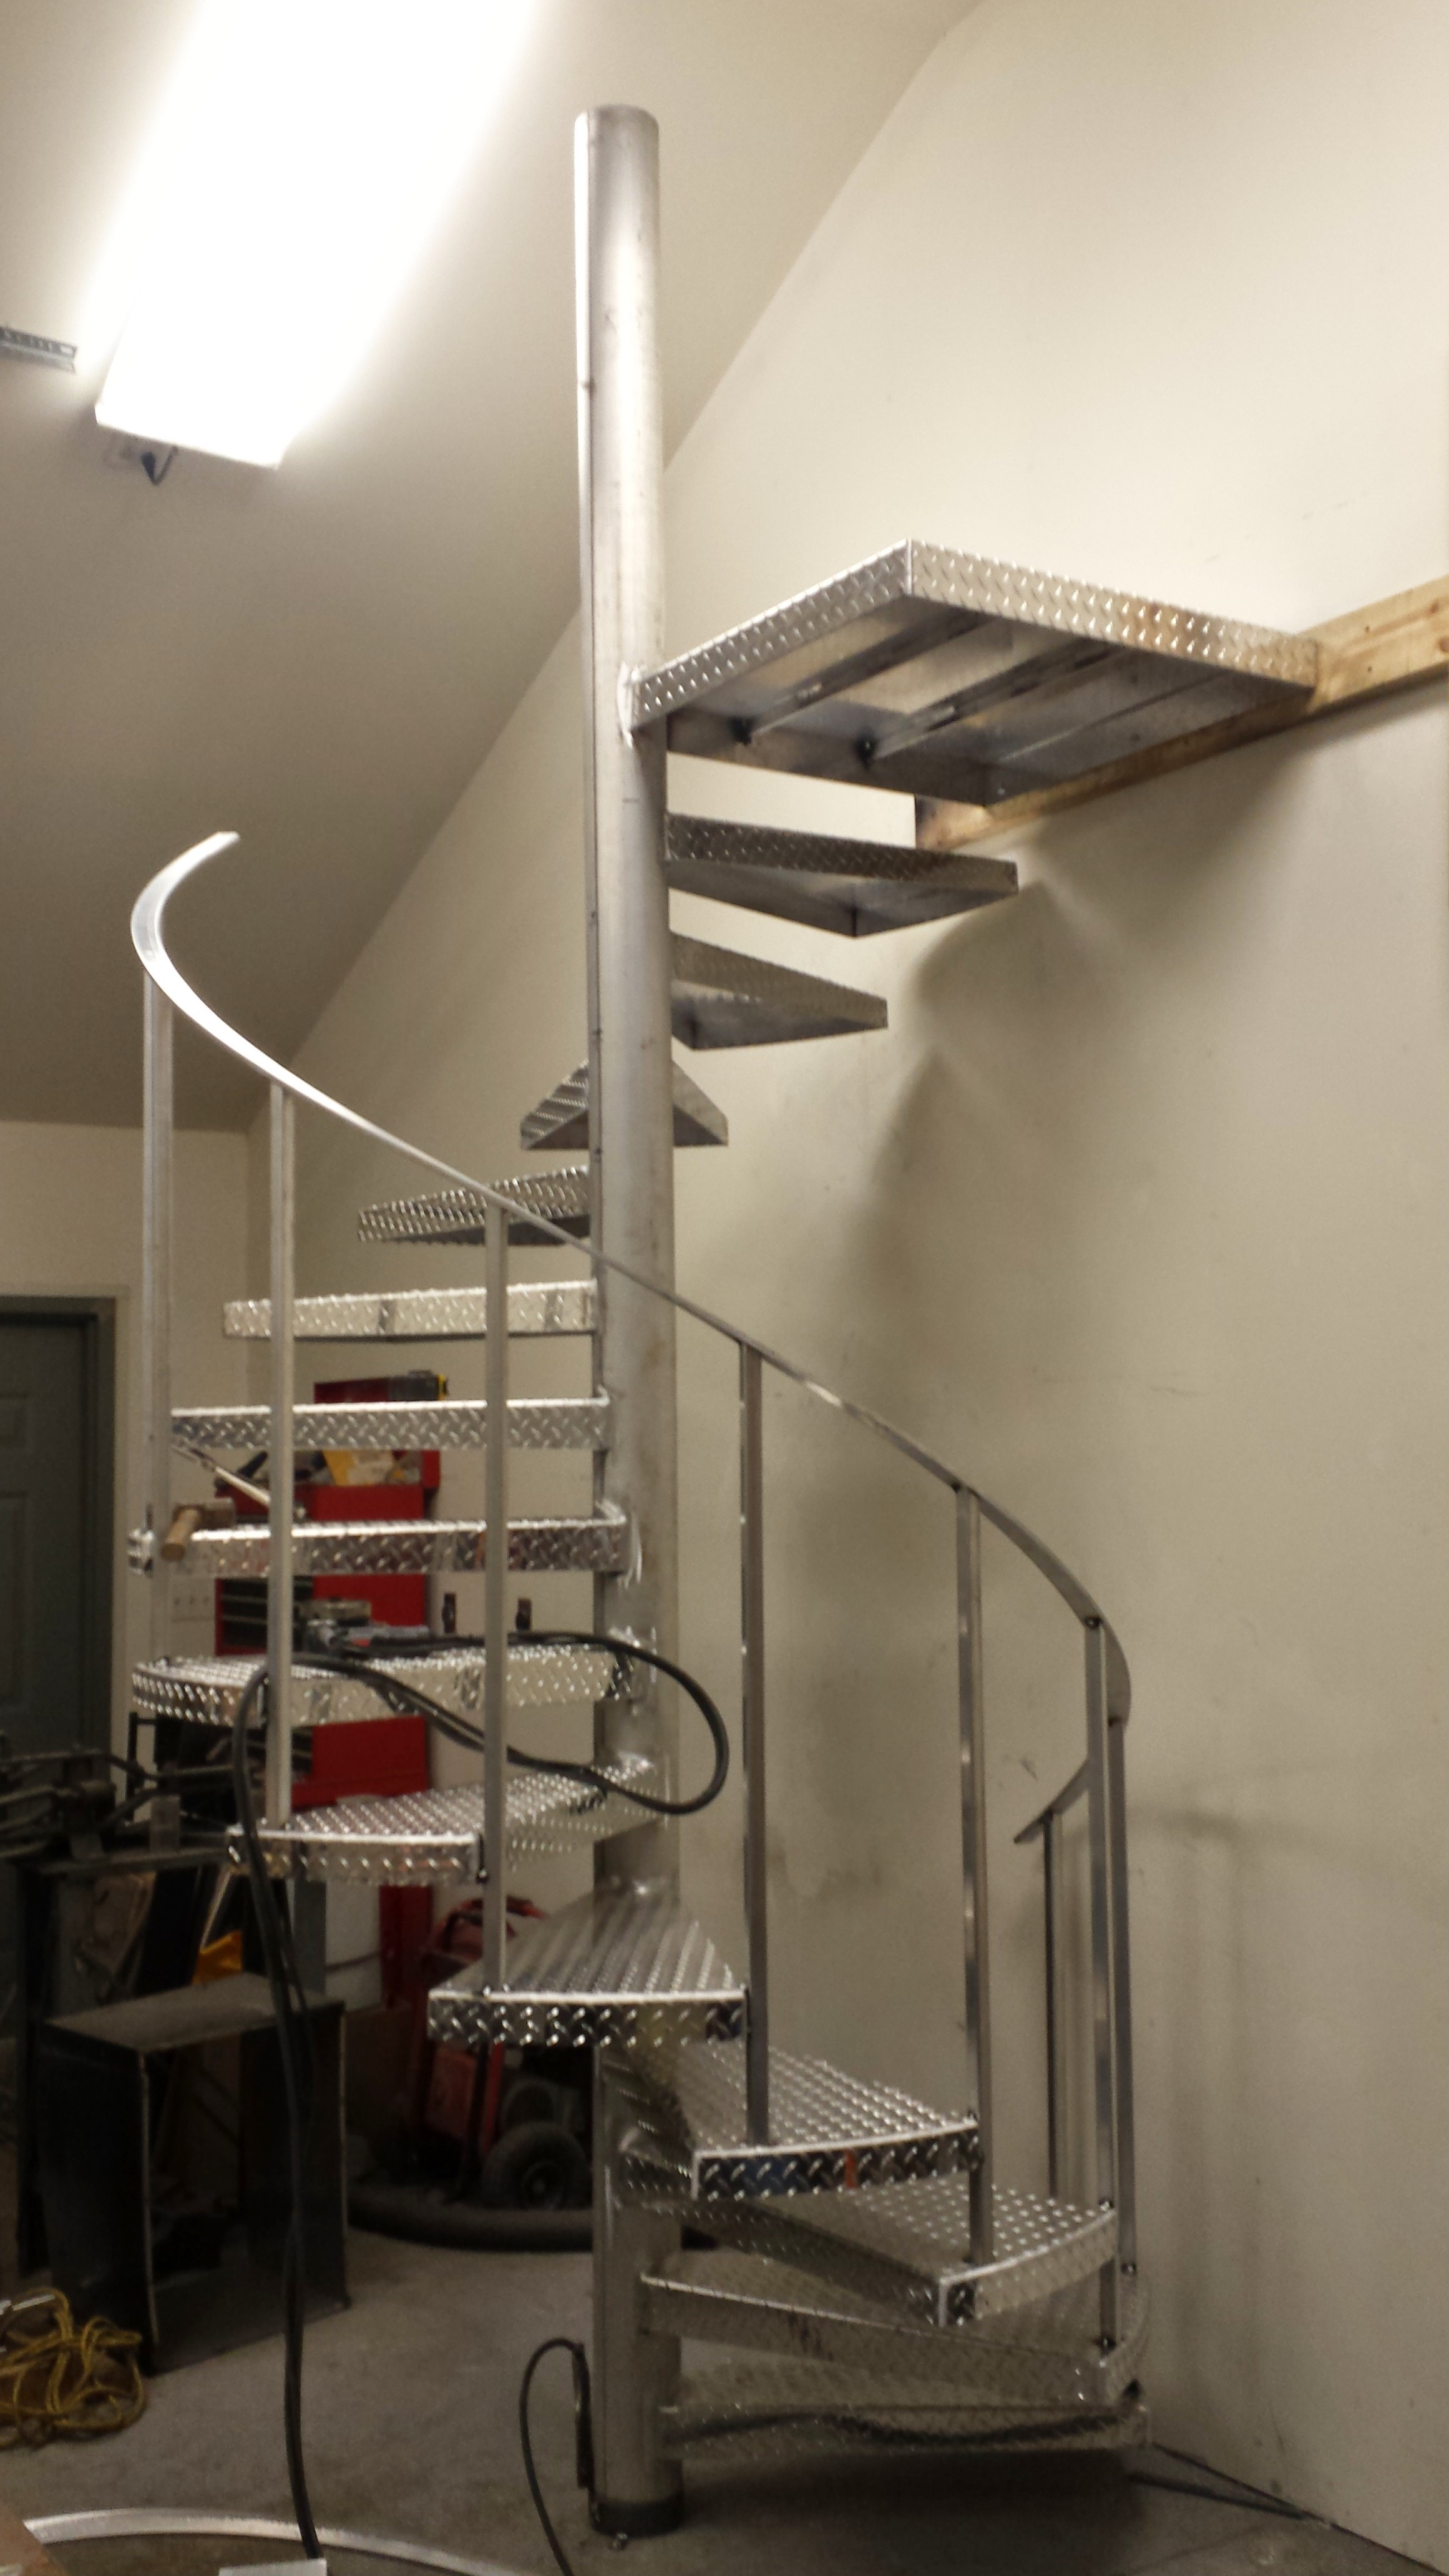 ... Steel Spiral Staircase That The Paint Was Peeling Off Of And Wanted To  Replace It. Since Their Other Handrails On The Deck Were Powder Coated  Aluminum, ...